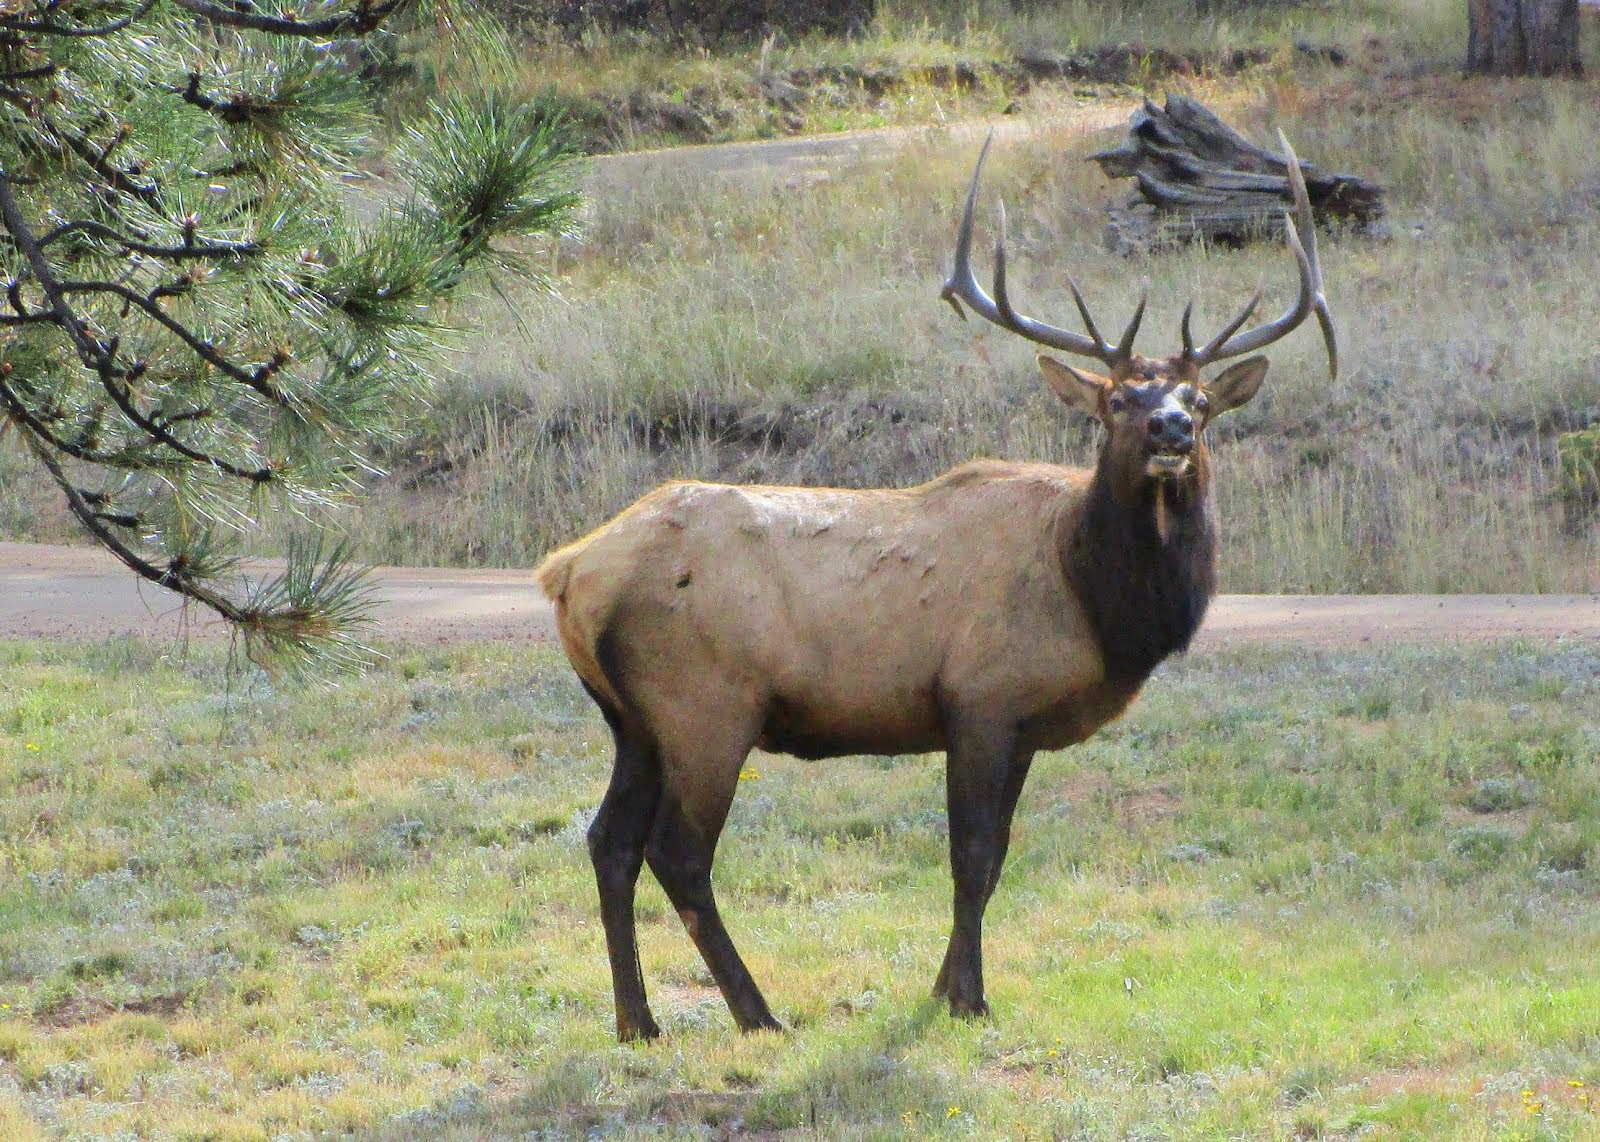 Bull Elk in our Yard